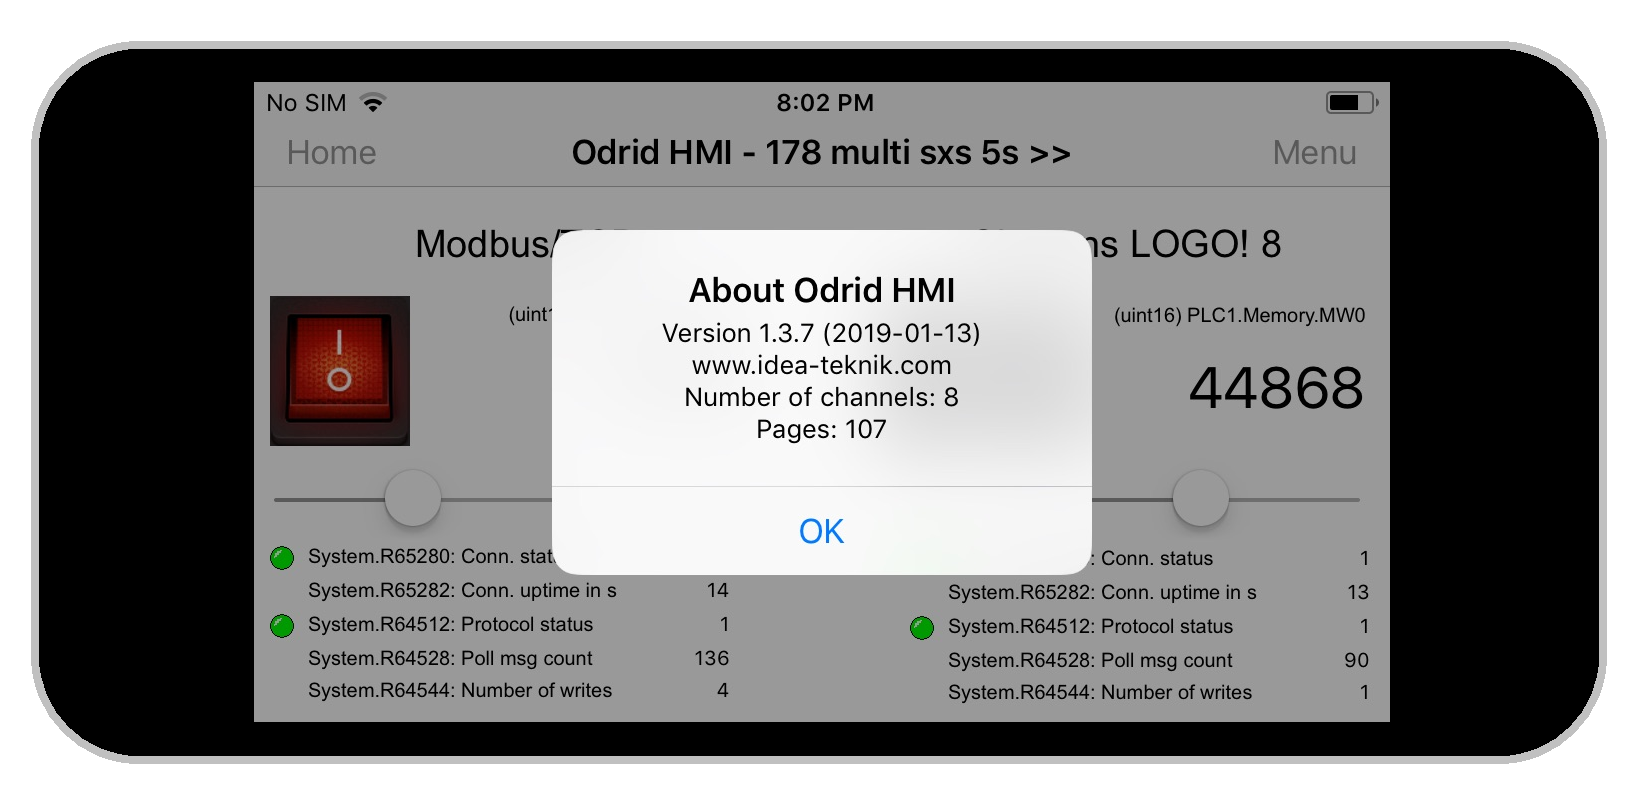 Odrid HMI 1.3.7 on an Iphone 5s